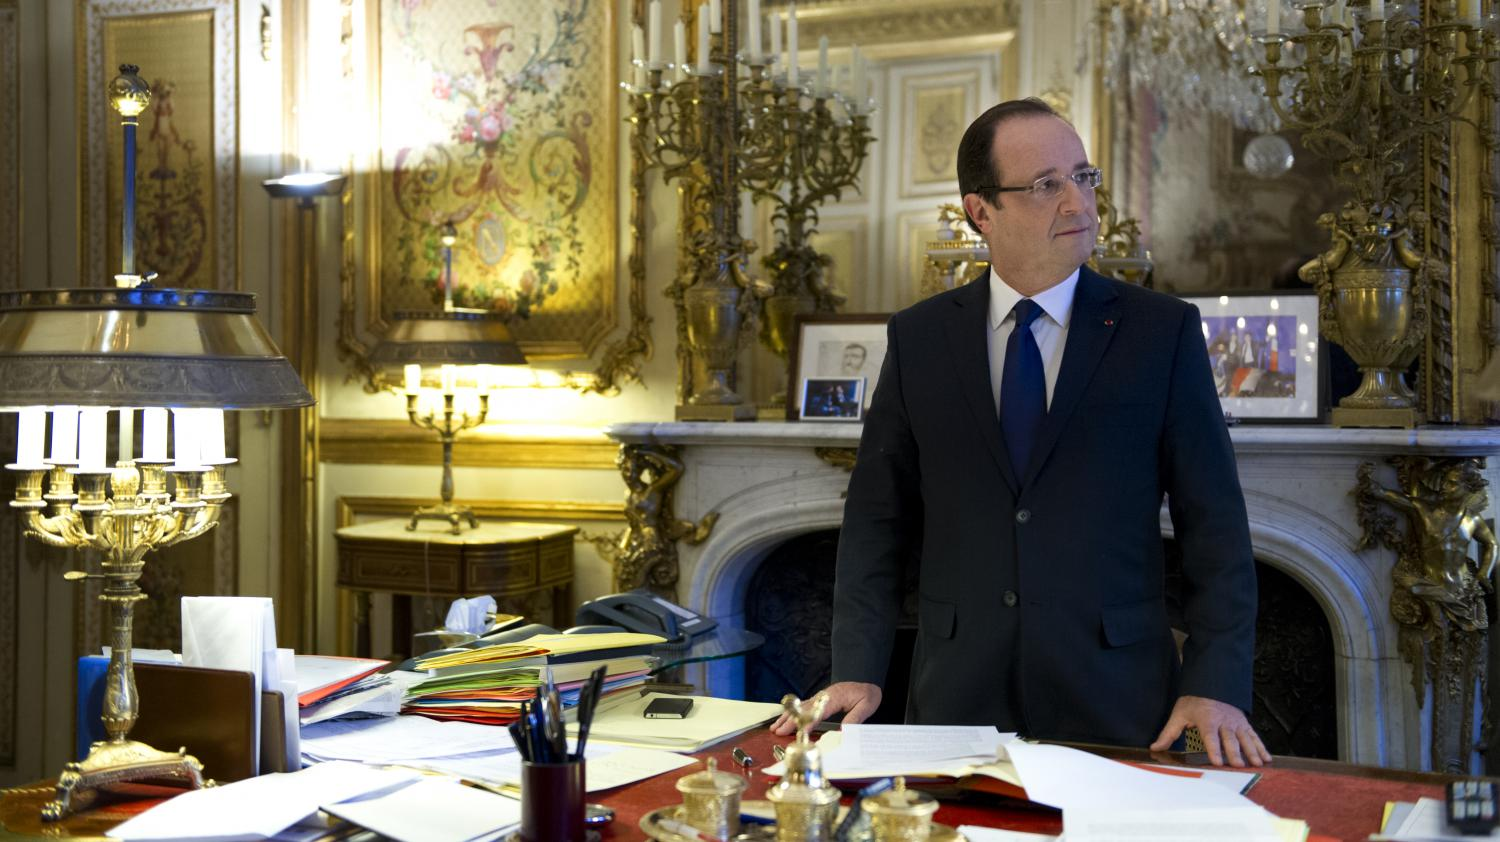 mitterrand chirac sarkozy hollande chacun son cabinet noir. Black Bedroom Furniture Sets. Home Design Ideas